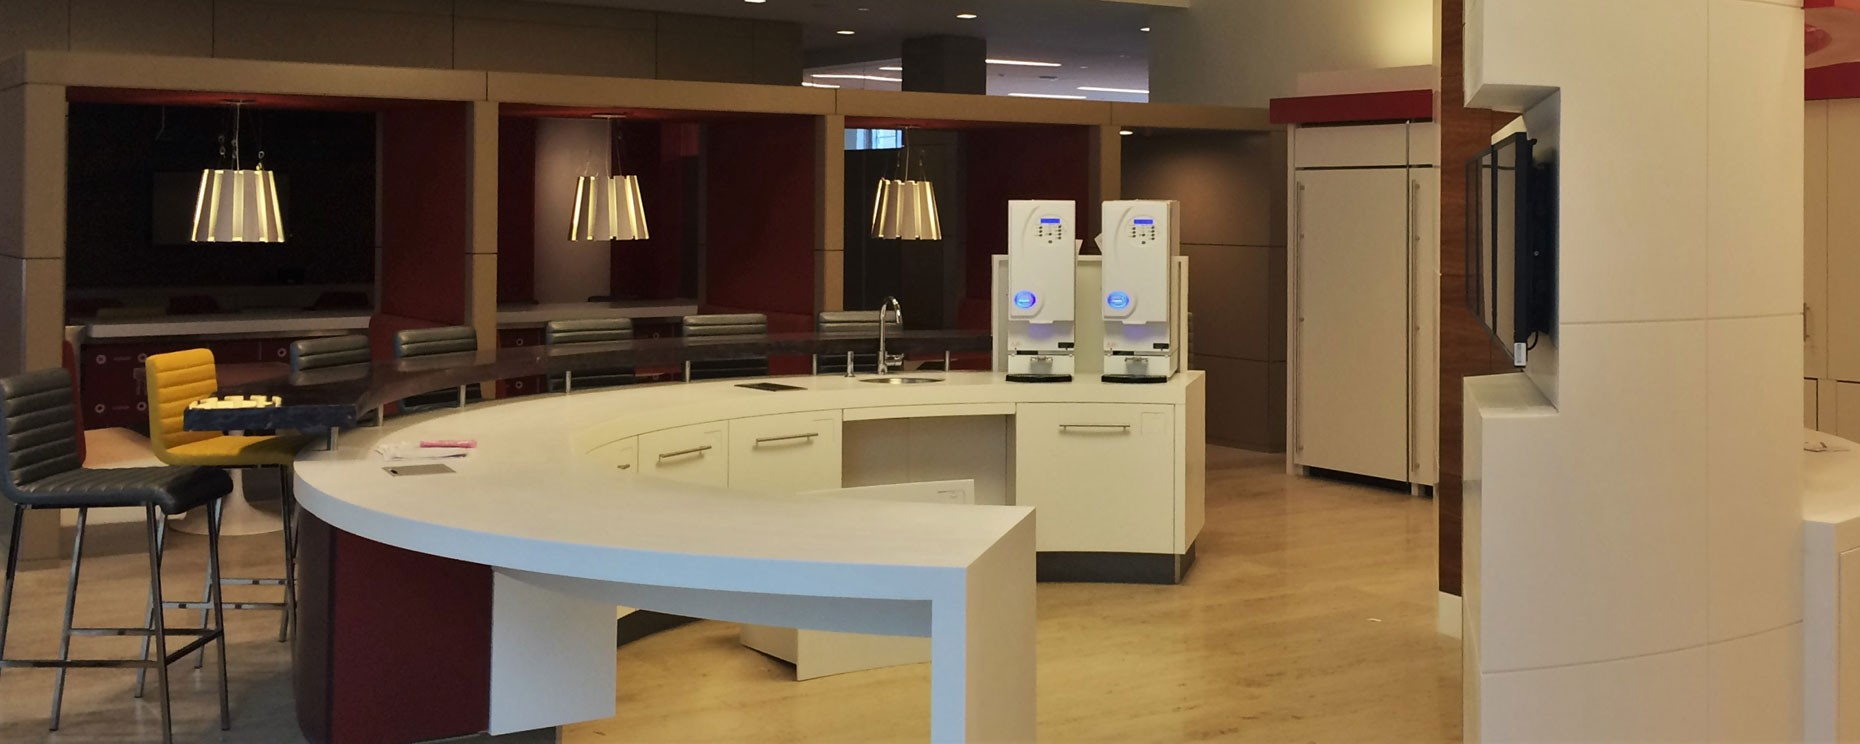 Exxon Mobil World Headquarters Campus, Spring, TX. Thermoformed refreshment rotunda break areas  Materials: Corian, 3form, painted millwork Architecture: PDR General Contractor: Gilbane